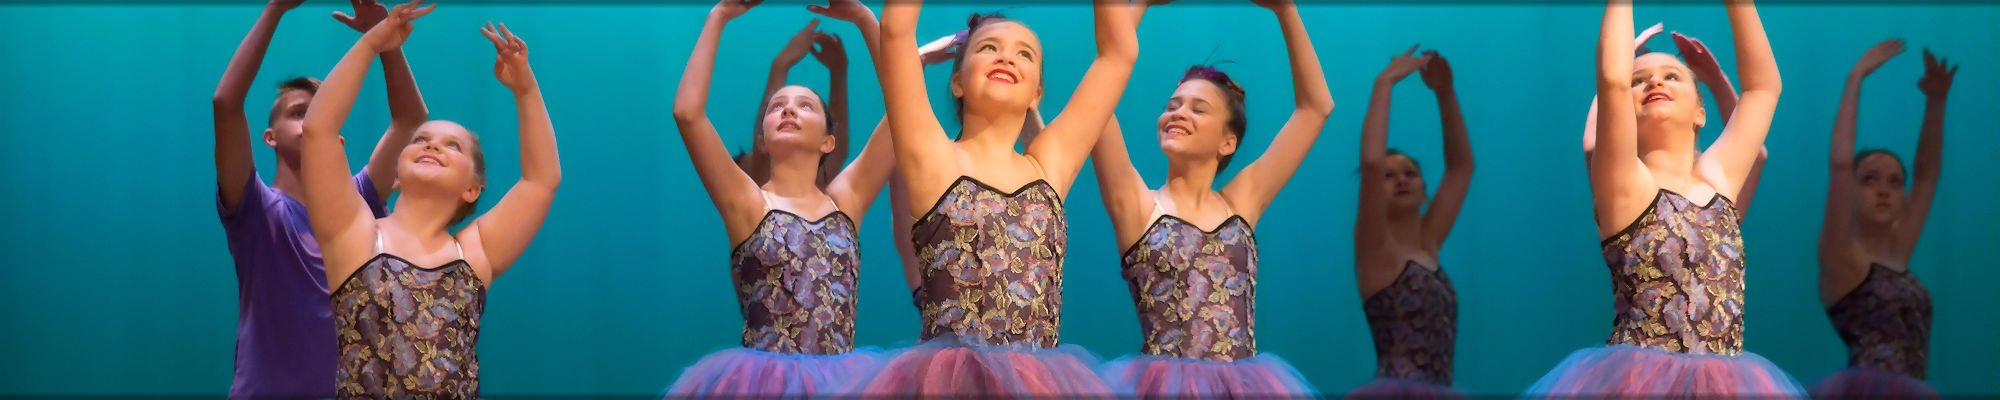 Grossi Dance & Performing Arts Academy, Grossi Dance, GDA, GD&PAA, Linda Regulbuto, dance studio Hartford, dance studio Connecticut, dance studio Vernon, dance CT, dance, tap, ballet, lyrical, jazz, funk, rhythm, hip hop, hip-hop, contemporary, creative movement, creative dance, me and my shadow, tots and tumbling, stories, songs, steps, boogie ballet, meet me at the barre, conditioning for dancers, zumba, musical theater, musical theatre, ballroom, beginner dance, intermediate dance, experienced dance, seniorettes, dance instruction, dance lessons, Cecchetti syllabus, dance expression, dance emotion, Bob Fosse,  Frank Hatchett,  Savion Glover,  rhythmic principles, percussion roots, improvisation and interactive choreography, urban dance, preschool dance, teen dance, adult dance, teamwork, socialization, independence, attention span, dance imitation, tumbling, a revitalizing class based on ballet, Pilates, Gyrotonic and dancers' training workouts combining warm-up, barre and floor exercises to lengthen, strengthen and tone muscles,  light weights, balls, thera-bands, and hoops to define and lift muscle and spirits, classes focus on fitness, flexibility, core and spine strength, using hand weights, bands and balls for mat work along with standing and floor exercises done to upbeat music, an intense full body workout to get the student strong and lean, Zumba Latin Dance, salsa, merengue, cumbia ,quebradita, sculpt your body while burning fat, focusing strongly on increasing strength and flexibility in the core, Dance Masters of America, National Association of Dance and Affiliated Artists, NADAA